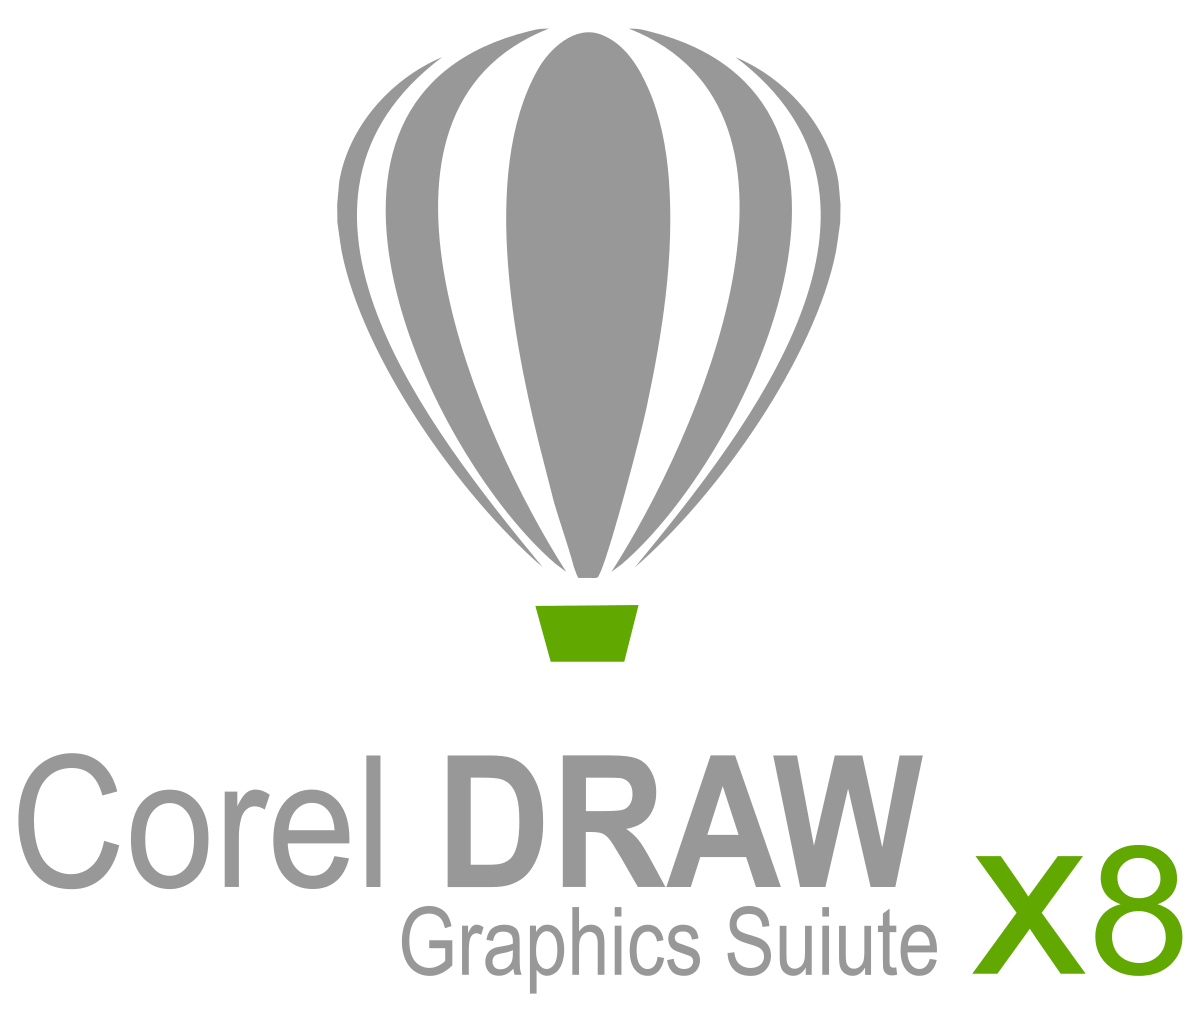 Corel Draw Editor De Logotipo